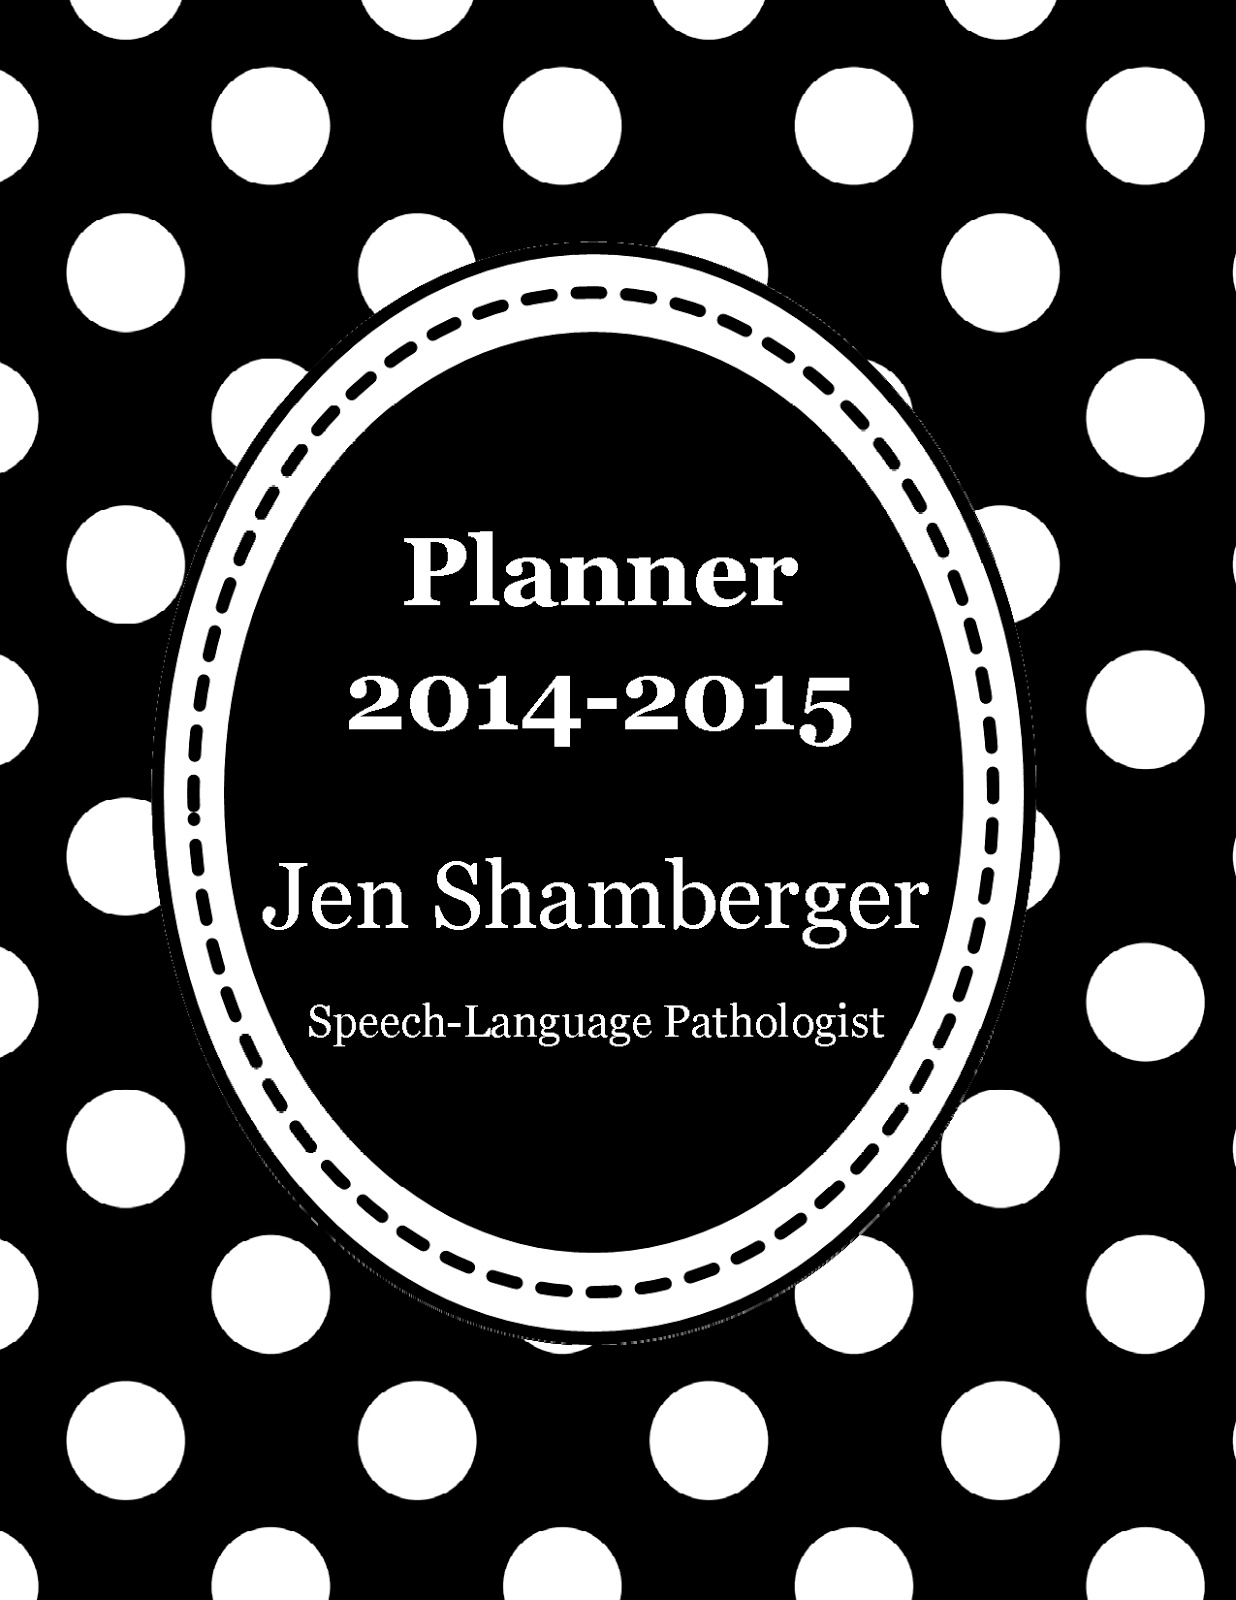 Special education planner bright colors black white i have included a general cover and also my first do it yourself editable covers for each design solutioingenieria Images